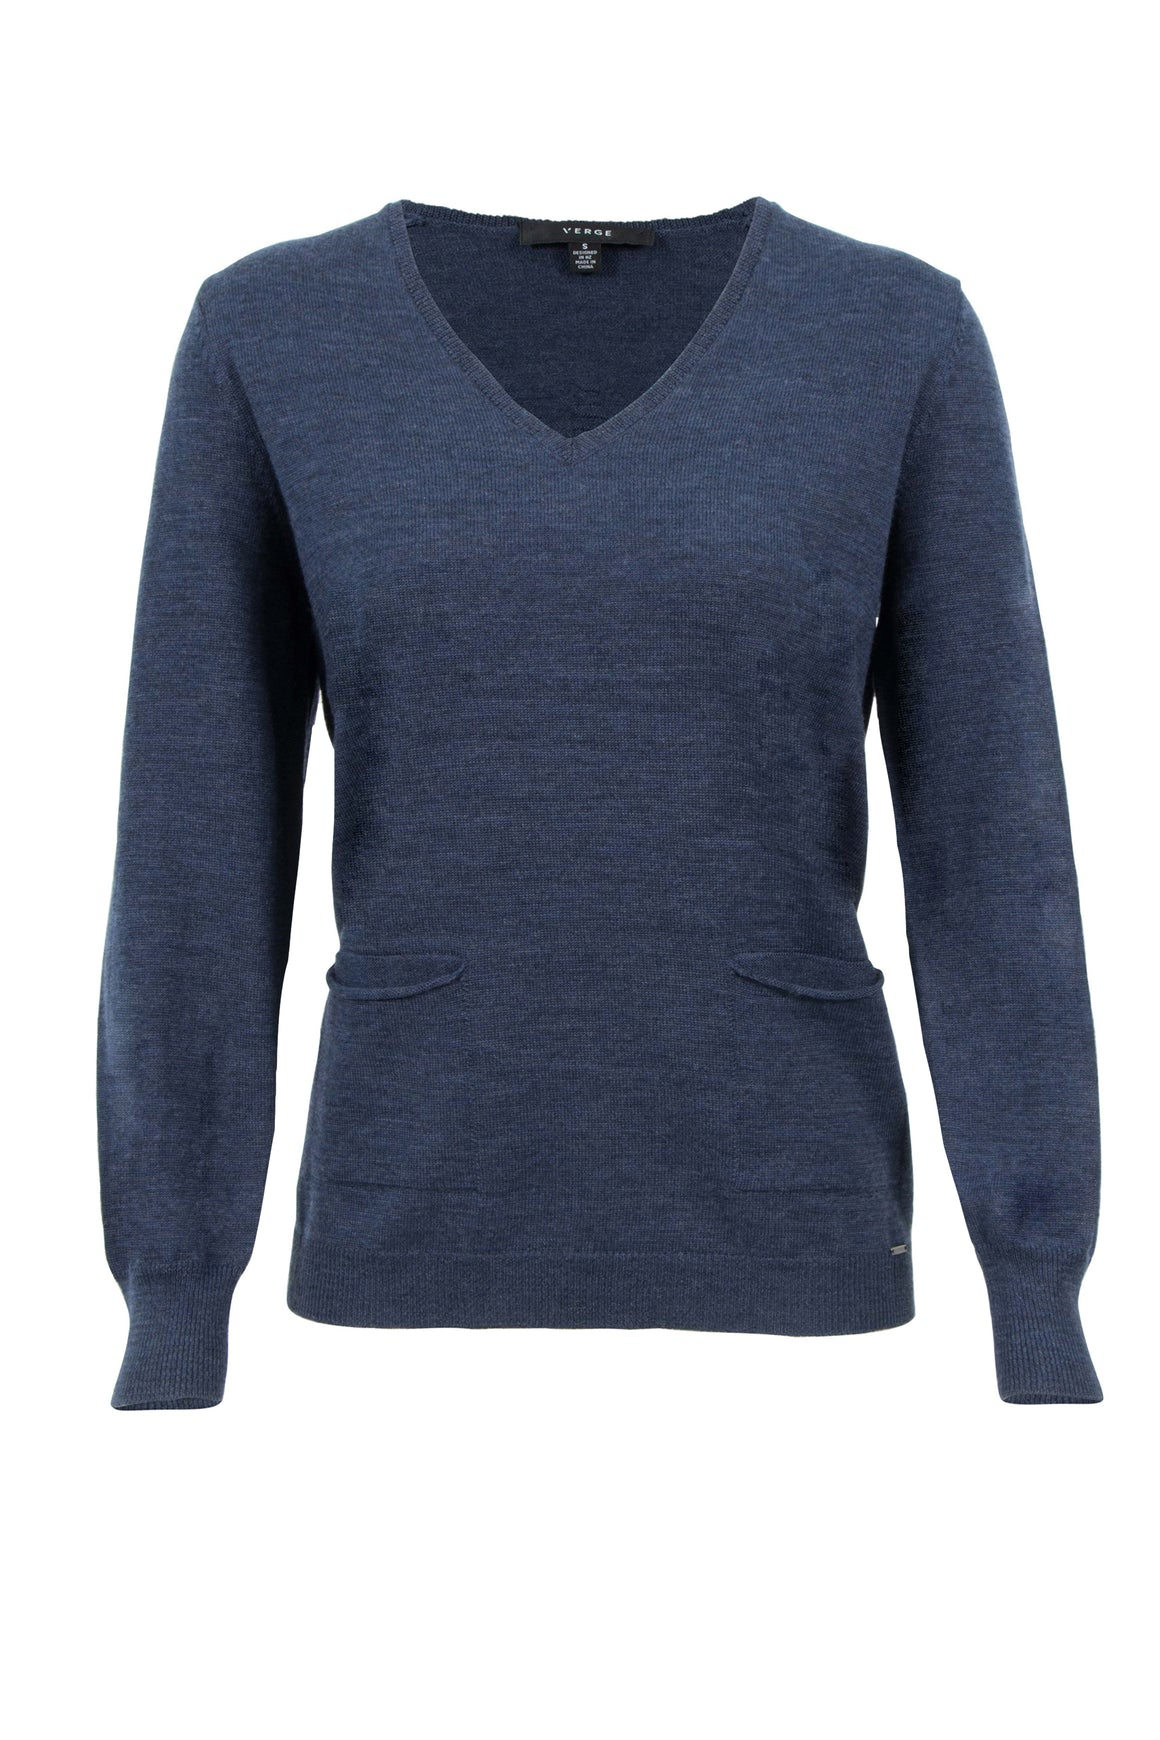 COLLIDE SWEATER 5788SF